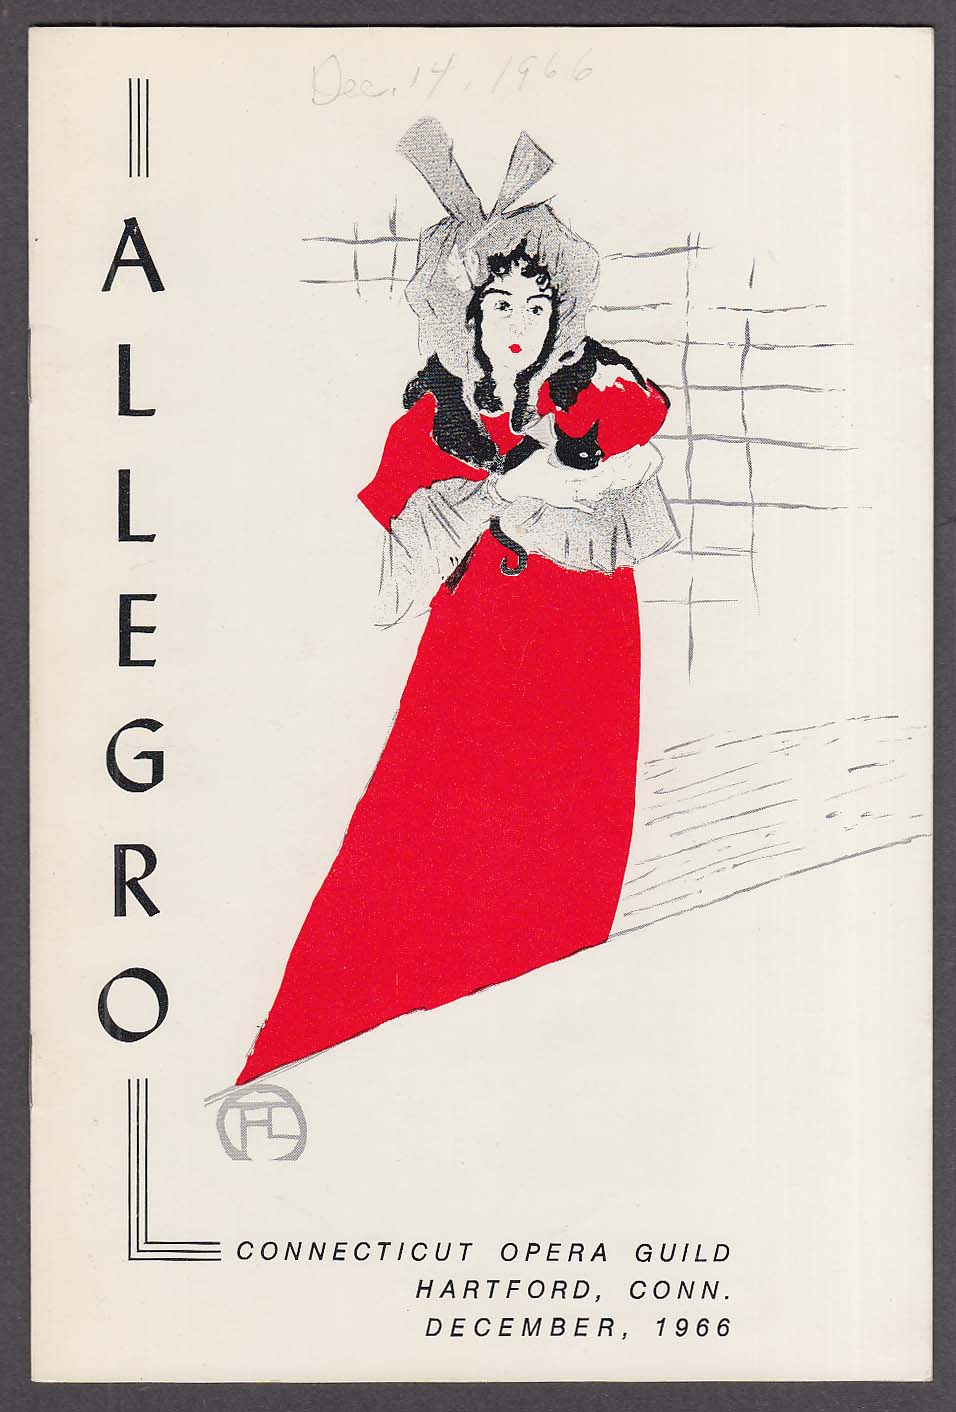 Connecticut Opera Guild Allegro Hartford Mirella Freni La Boheme 12 1966 program